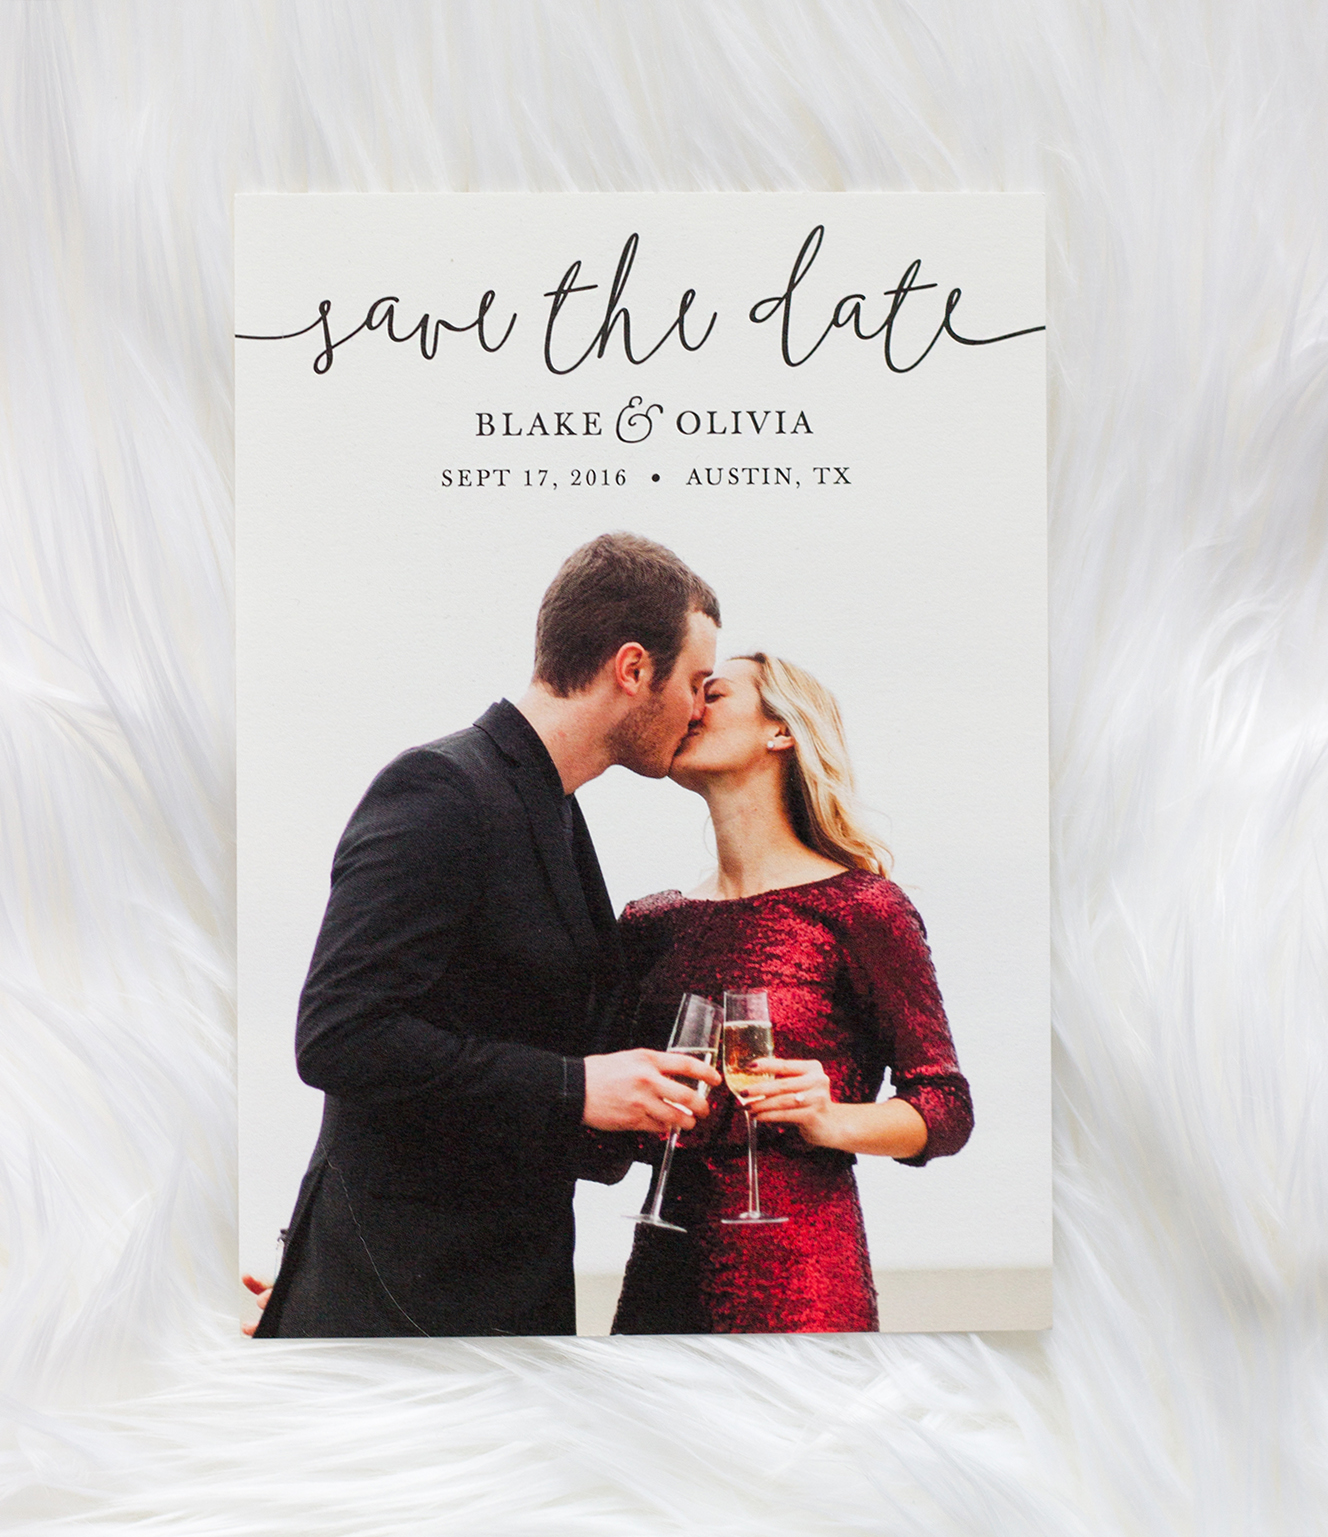 livvyland-blog-olivia-watson-blake-printy-save-the-date-minted-rent-the-runway-red-sequin-badgley-mischka-dress-austin-texas-engagement-shoot-2